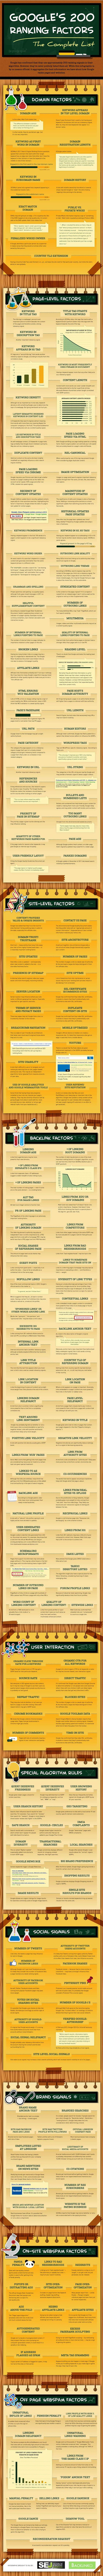 Google's 200 Ranking Factors, the complete list an infographic